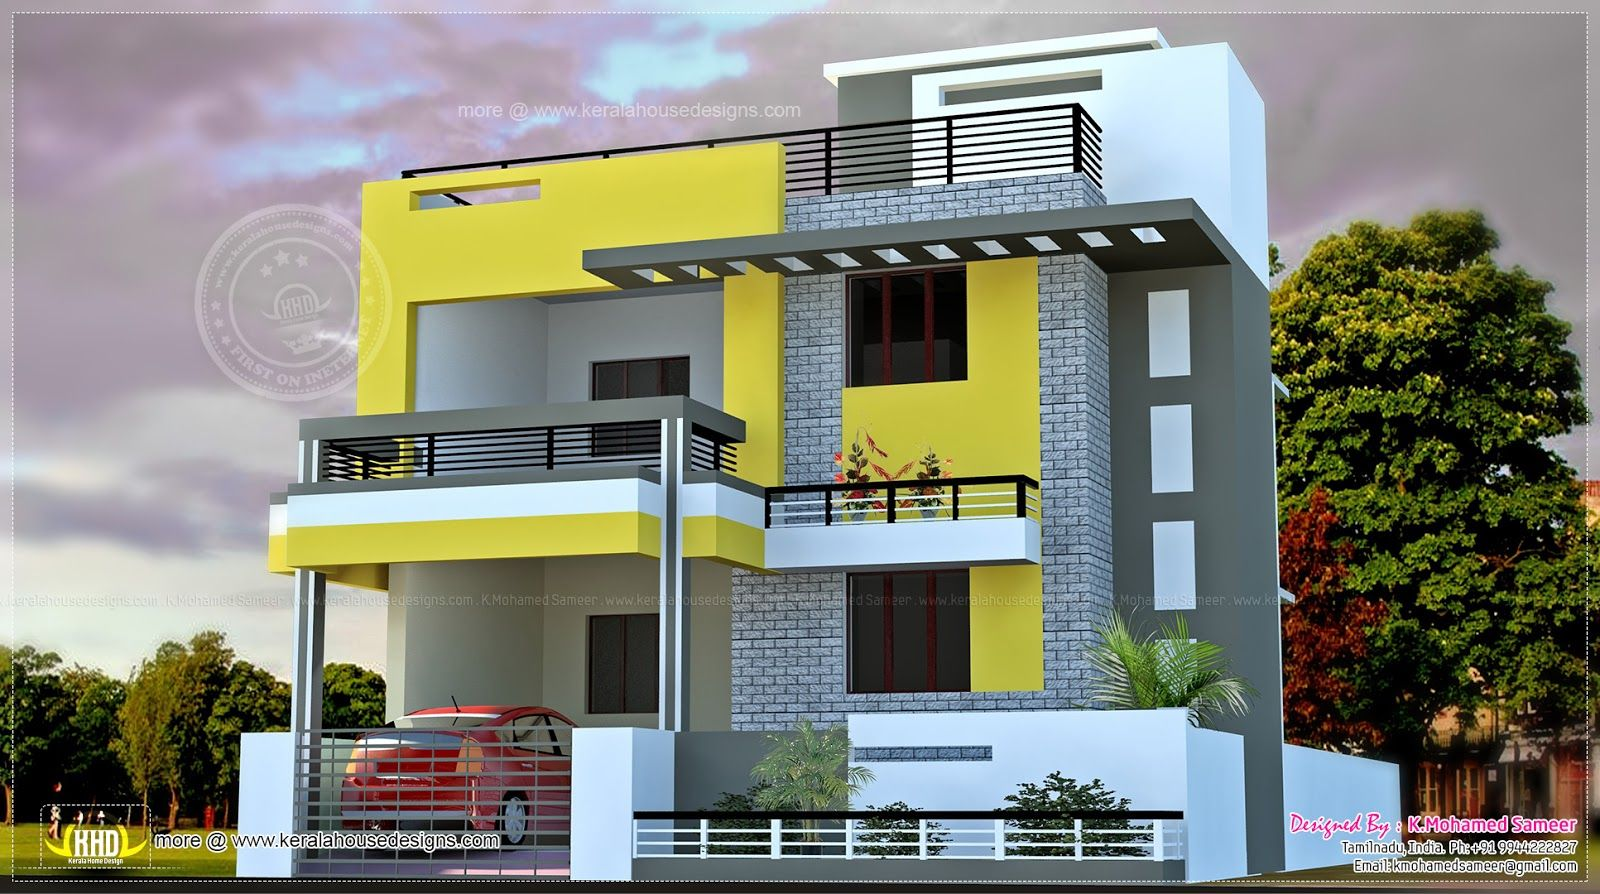 Elevations of residential buildings in indian photo New home plan in india